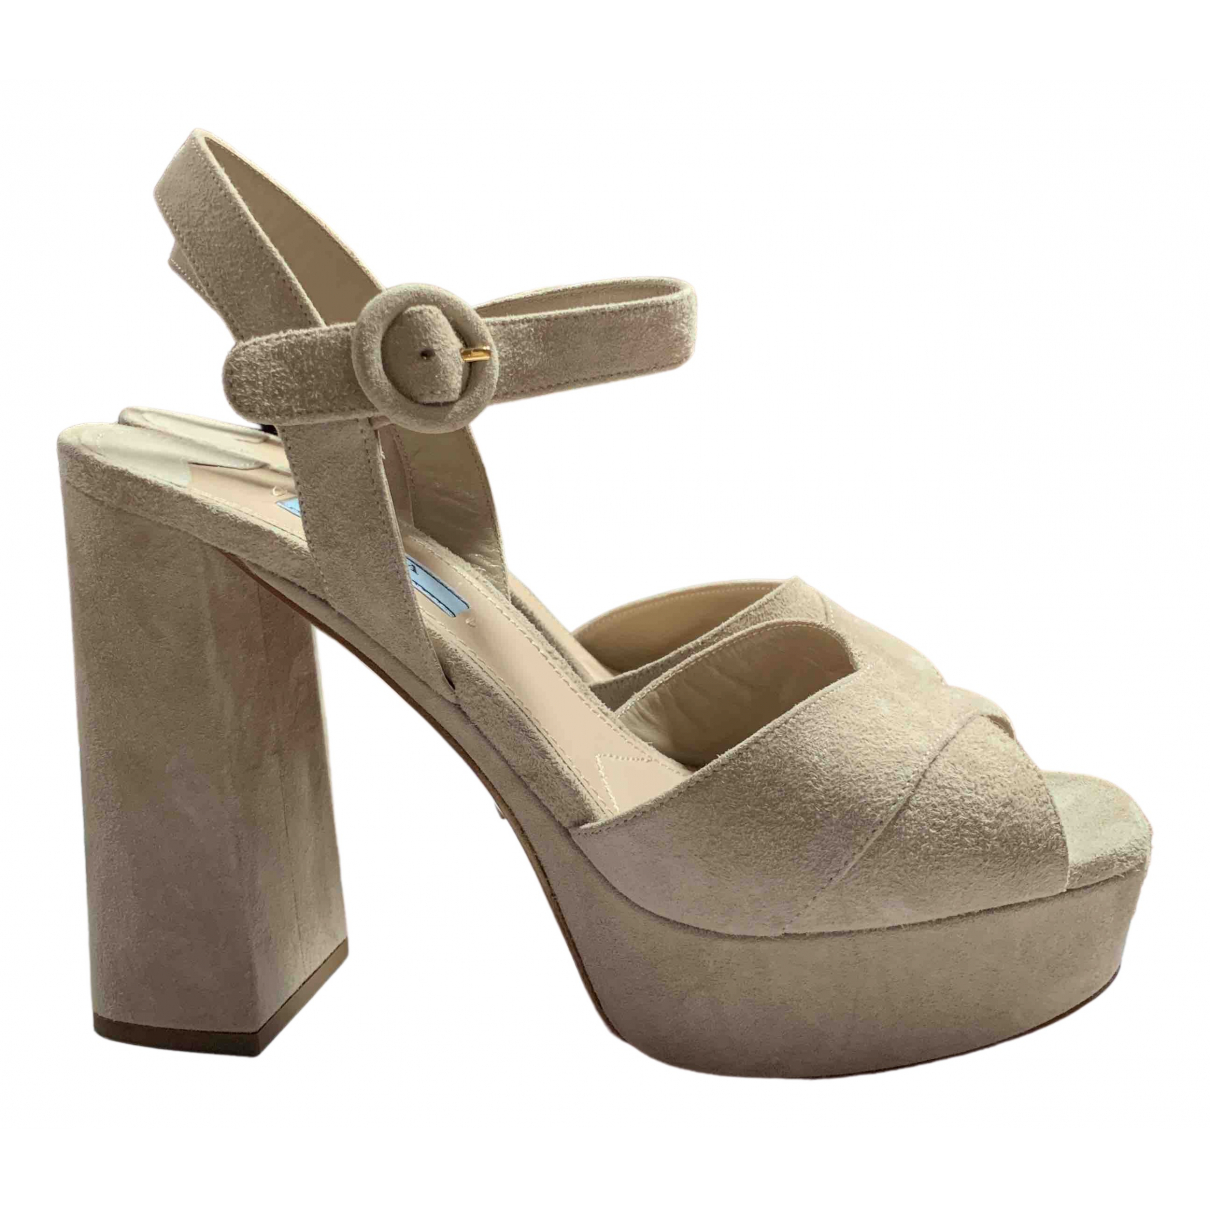 Prada N Beige Suede Sandals for Women 39 EU